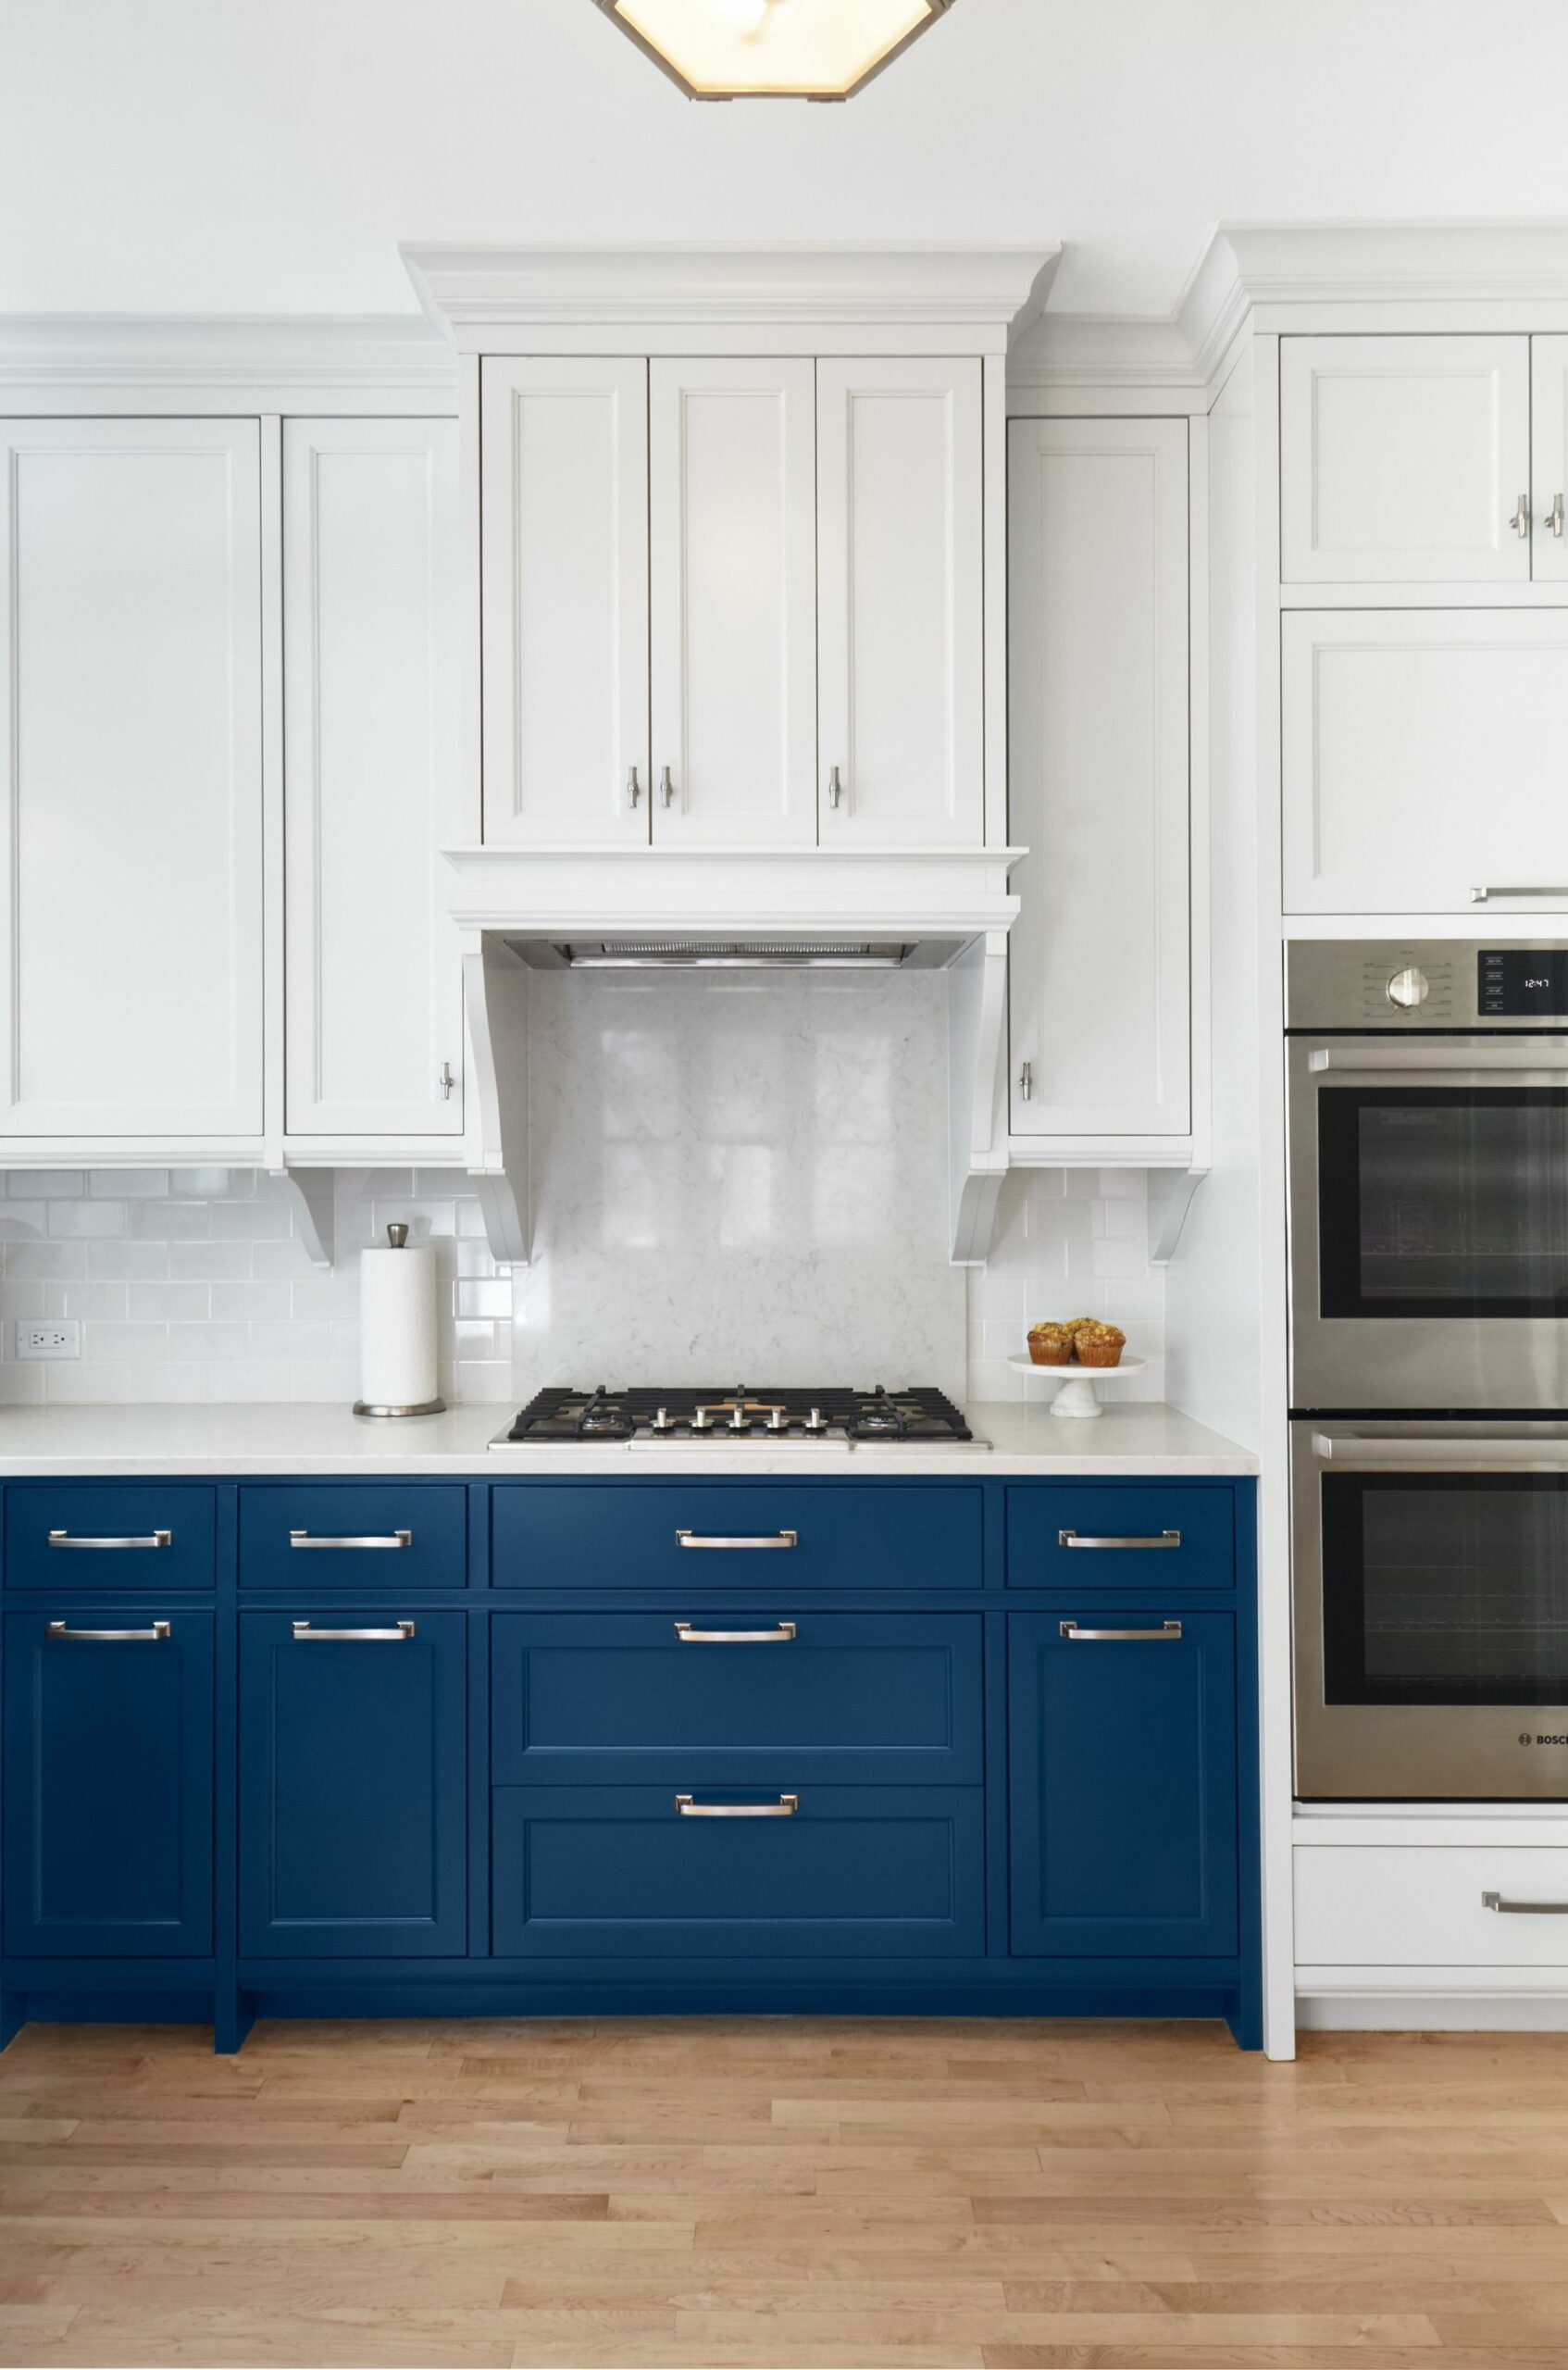 11 Blue Kitchen Ideas - Lovely Ways to Use Blue Cabinets and Decor ..